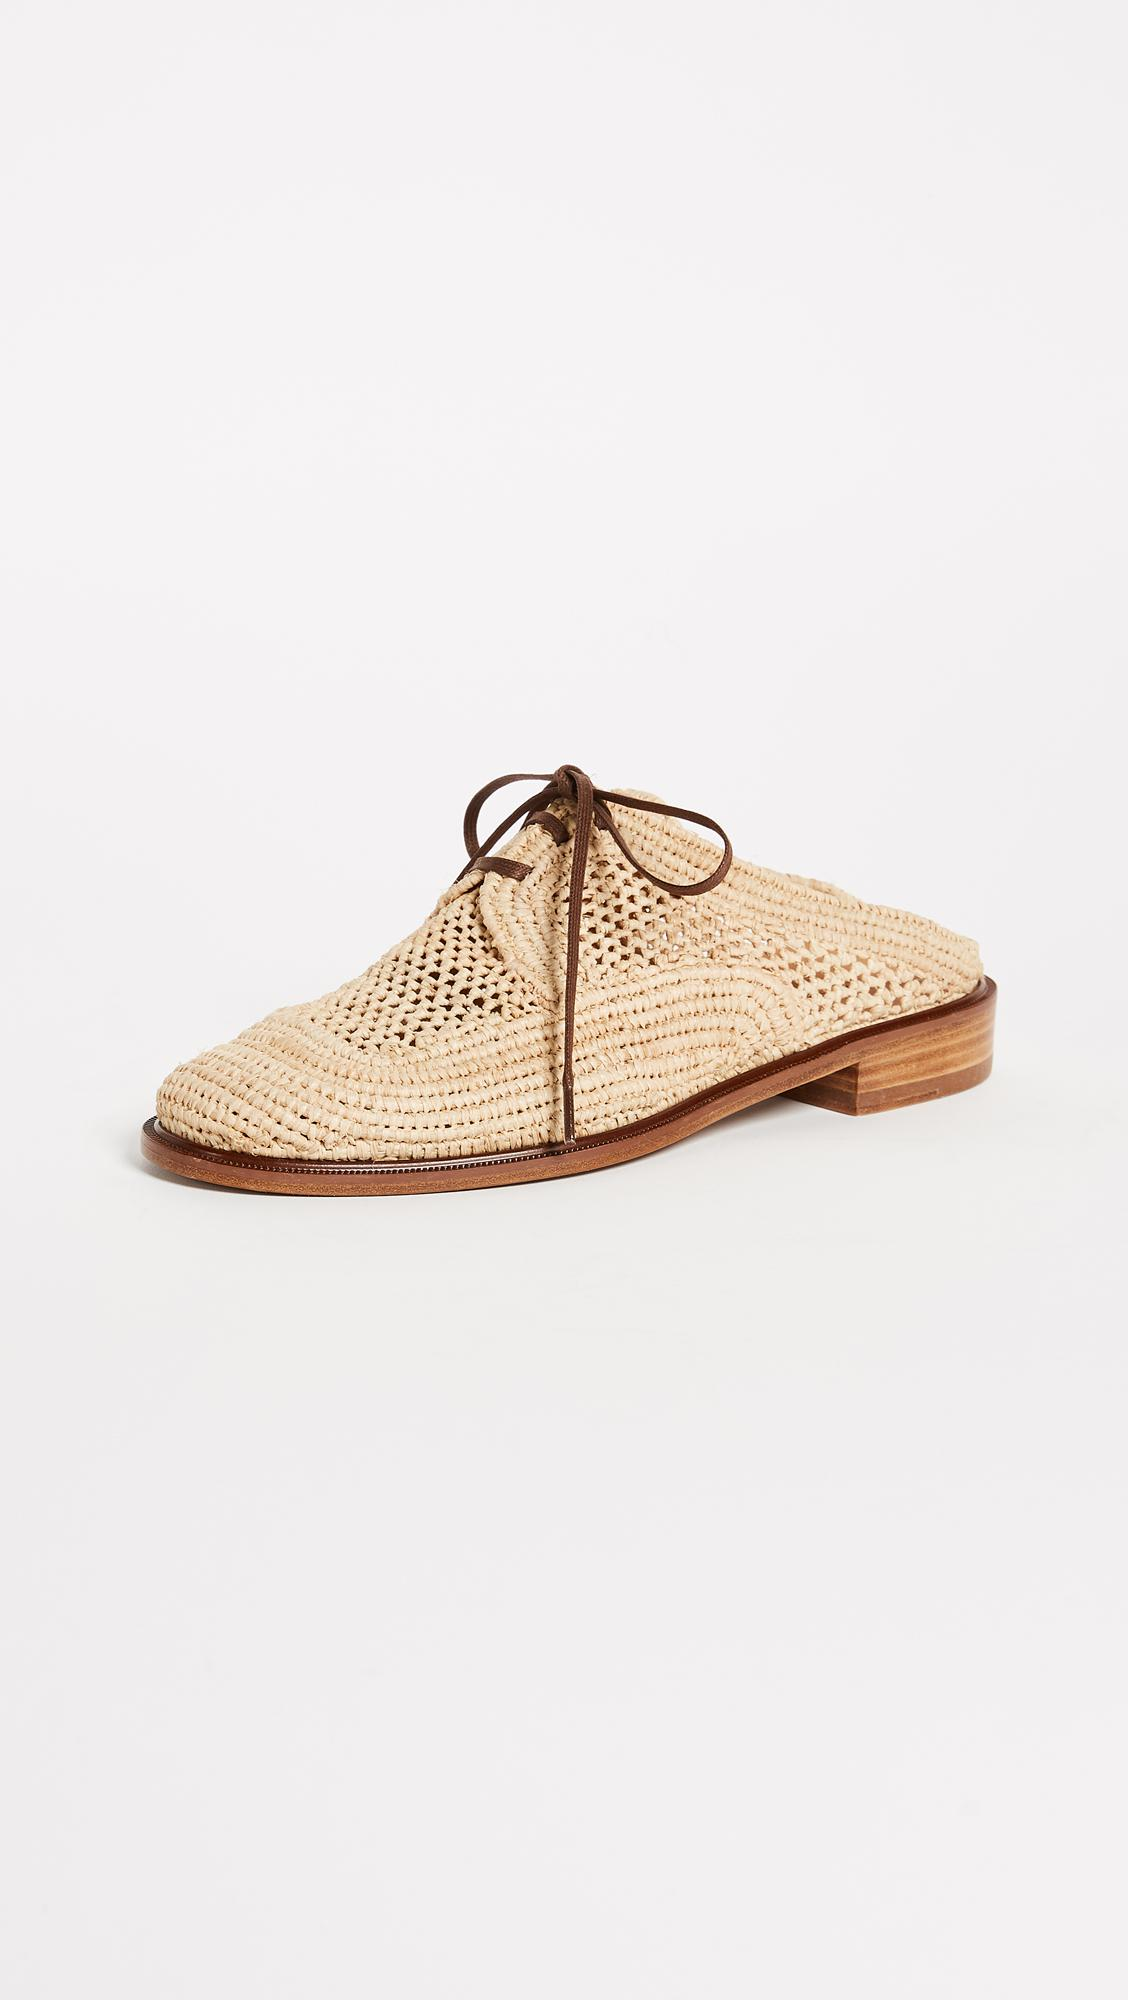 Robert Clergerie Women's Jaly Raffia Lace Up Mules 7pssdt0O